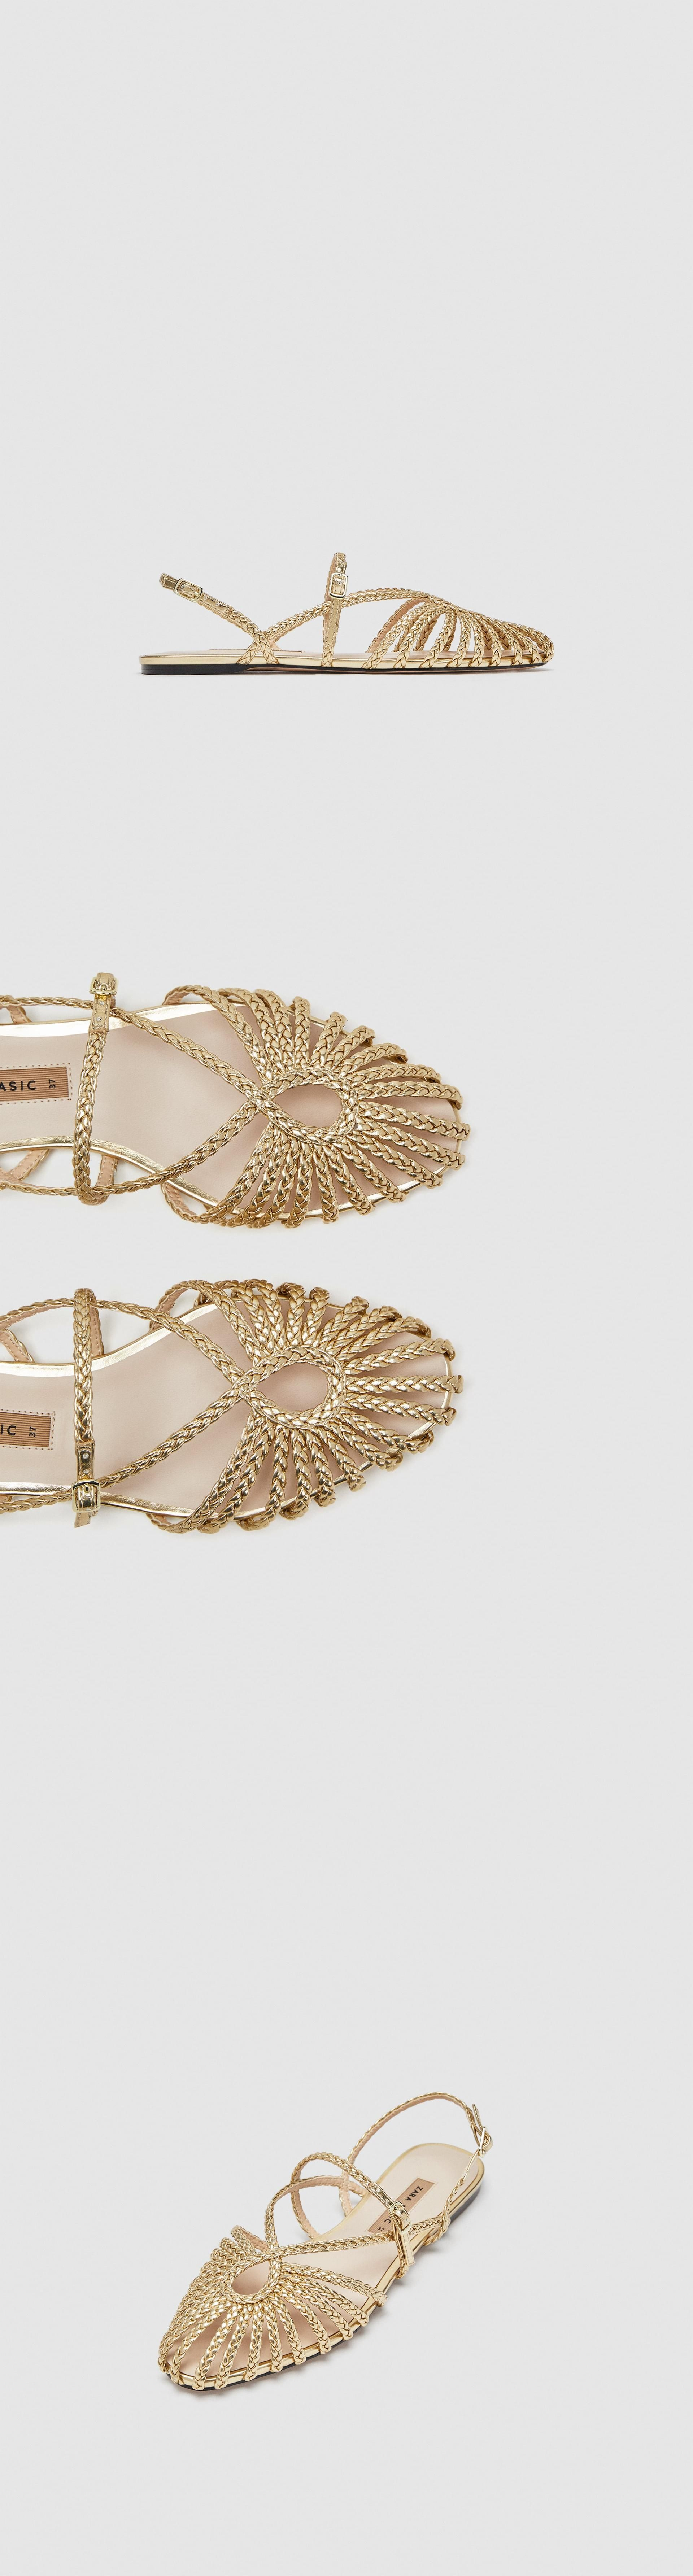 3bcb481bc4a Gold Braided Cage Sandals    49.90 USD    Zara    Gold cage-style ...